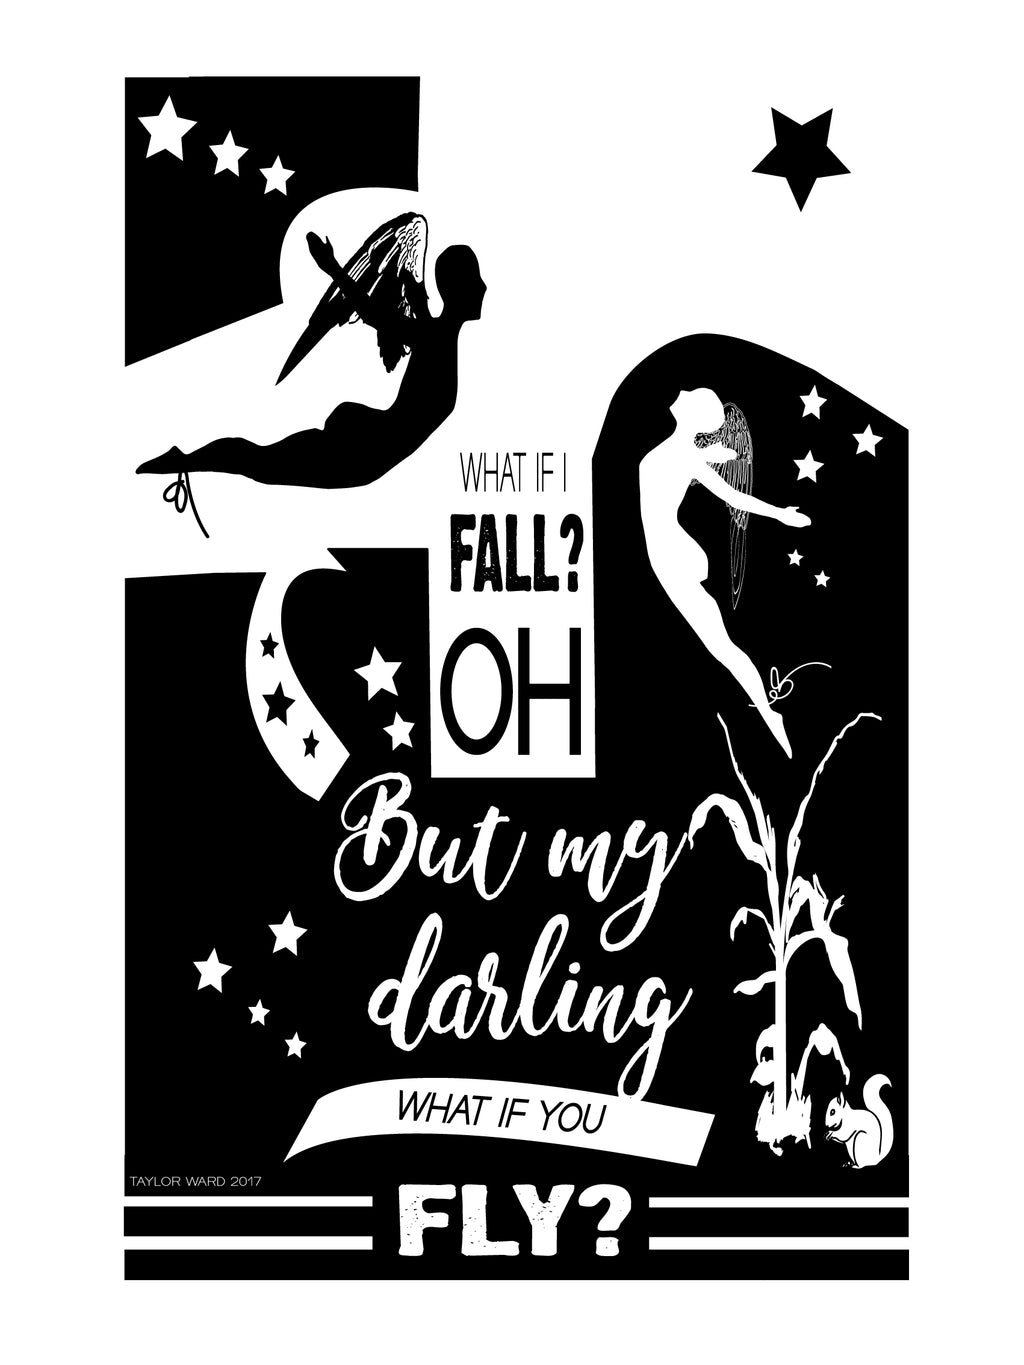 ' Darling What If you fly? Wall Art 80cm by 60 cm